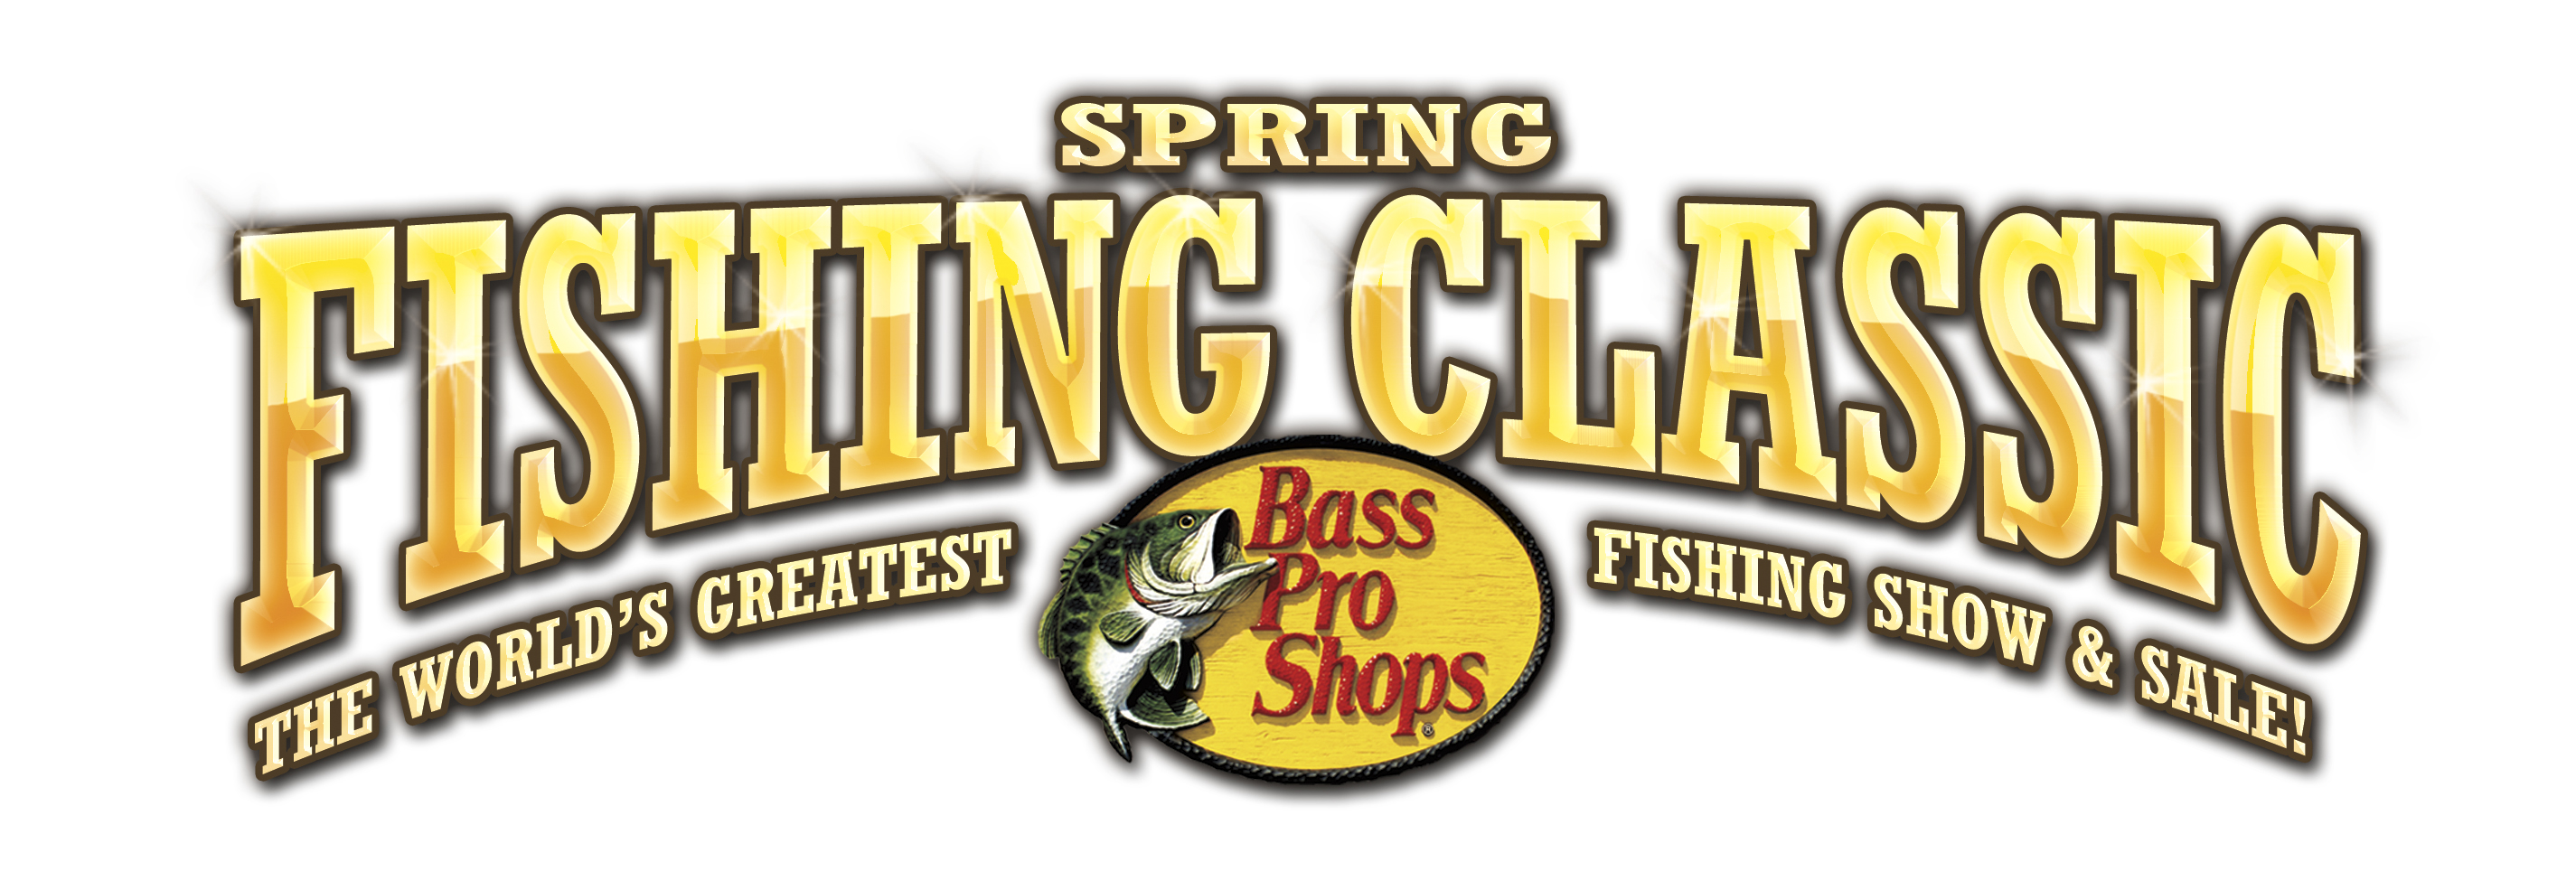 Inspiring people to enjoy & protect the great cansechesma.cf: Hunting, Fishing, Boating, Camping, Clothing, Shoes & Boots.